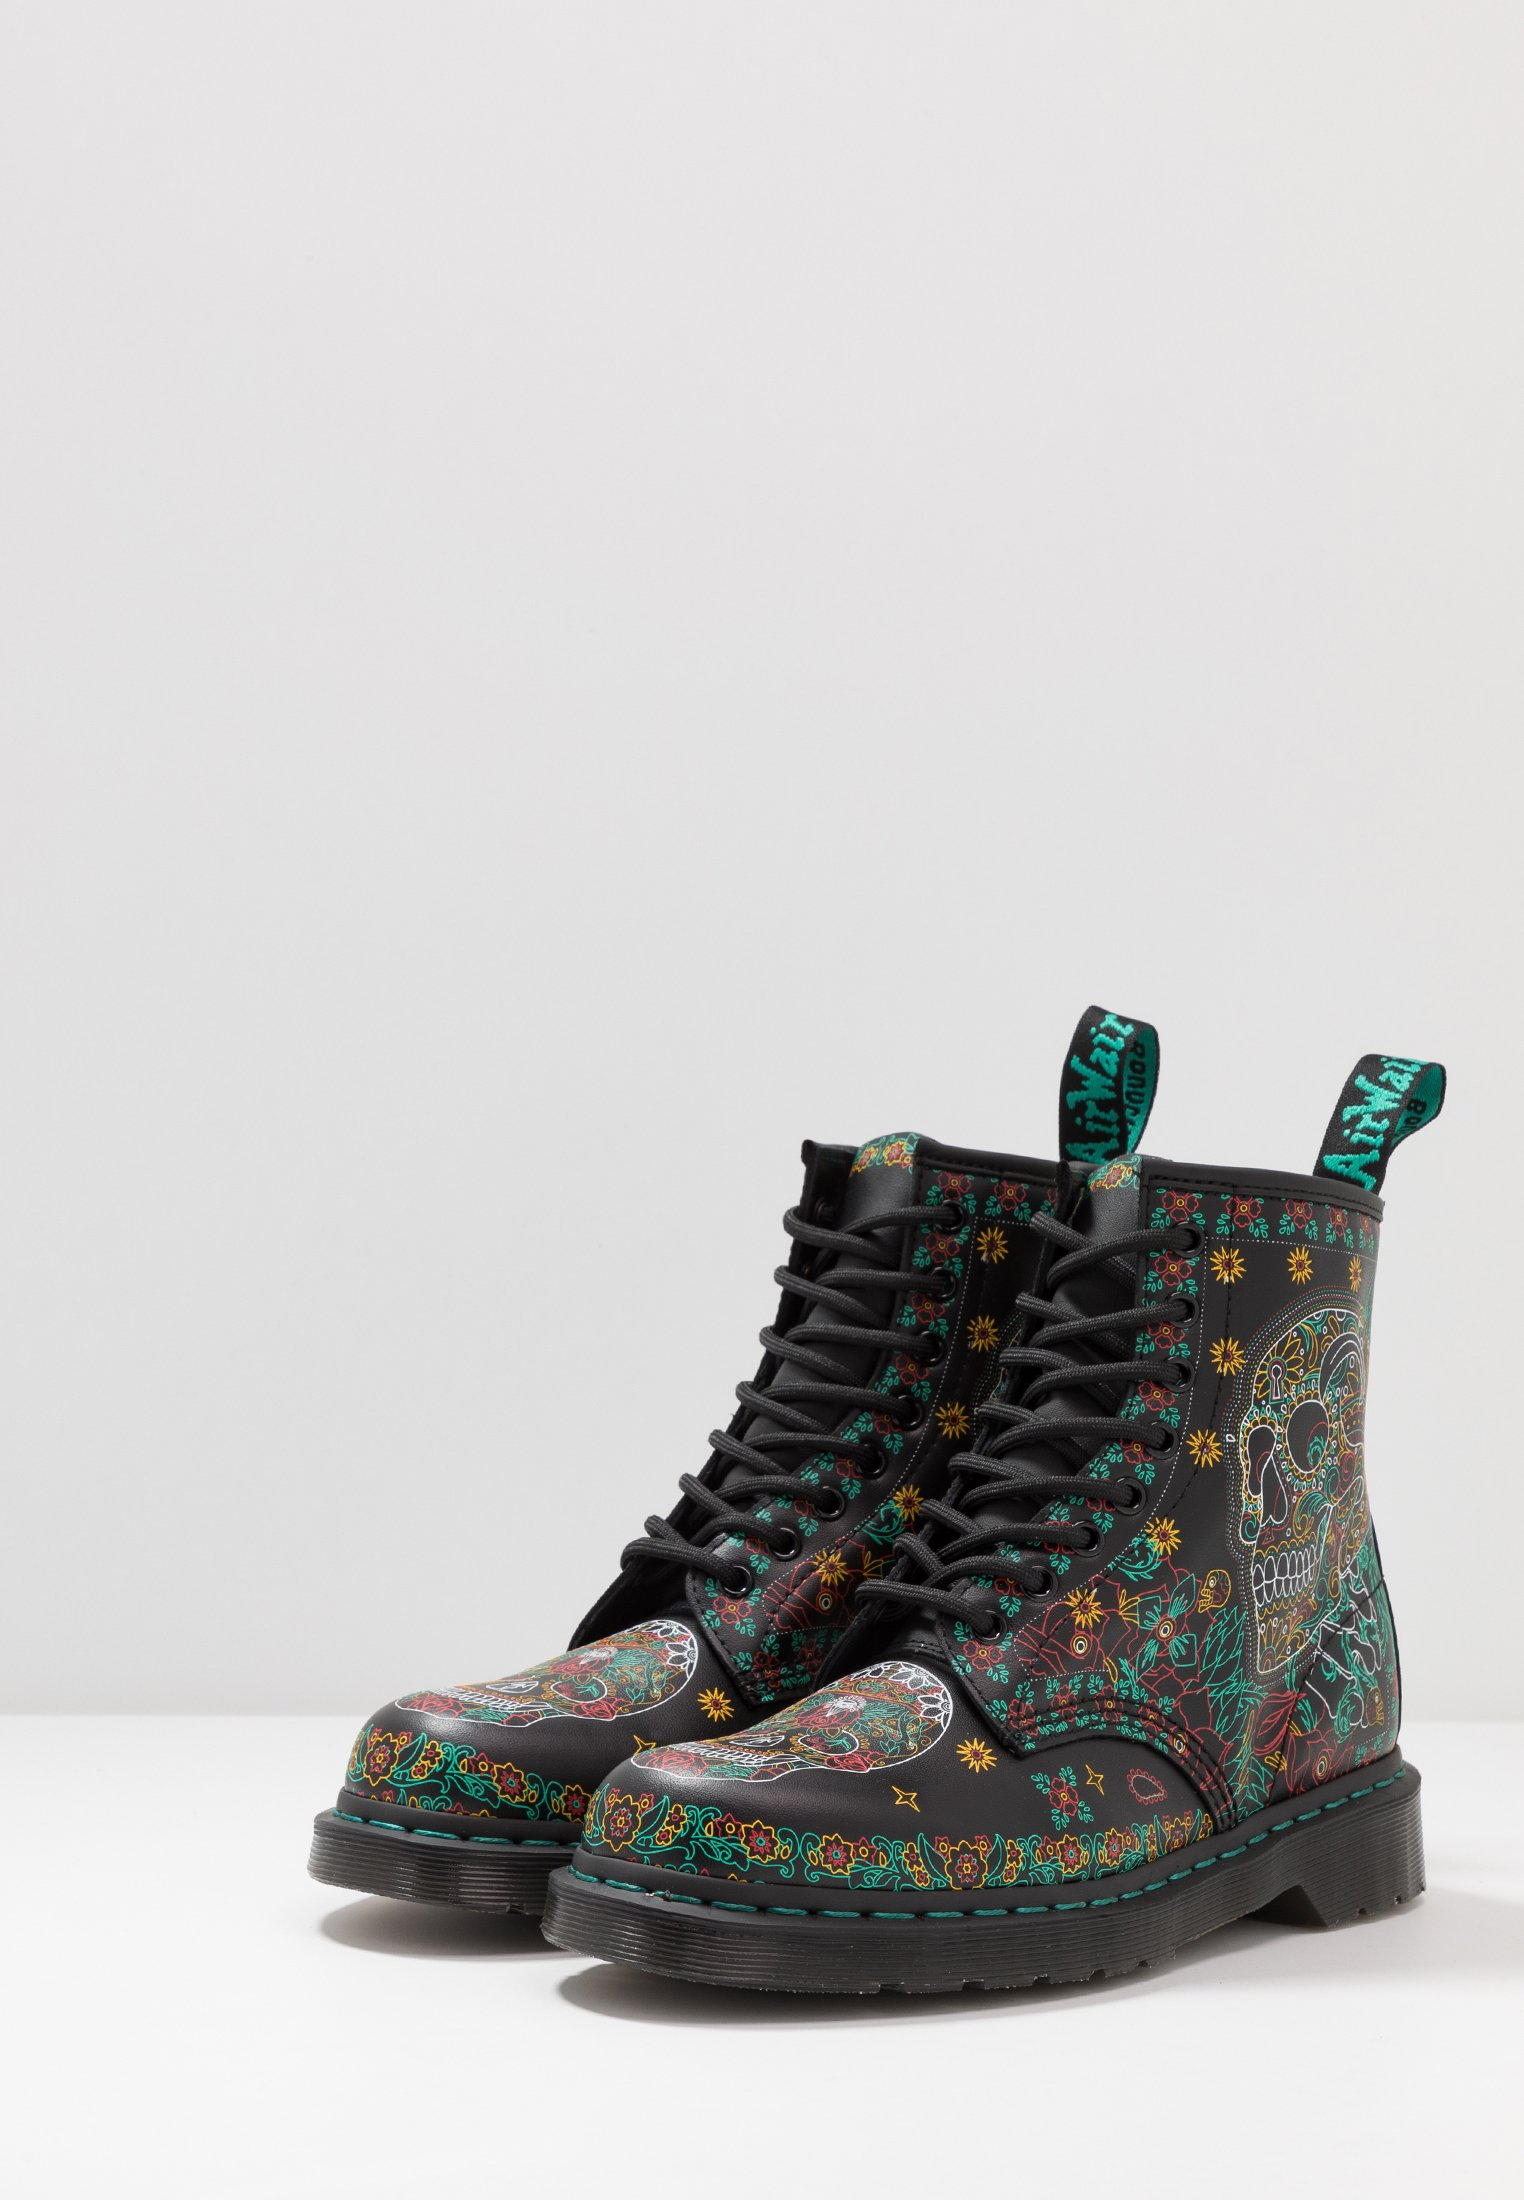 Limited Cheapest Dr. Martens 1460 DOTD - Lace-up ankle boots - multicolor | men's shoes 2020 mo3R9